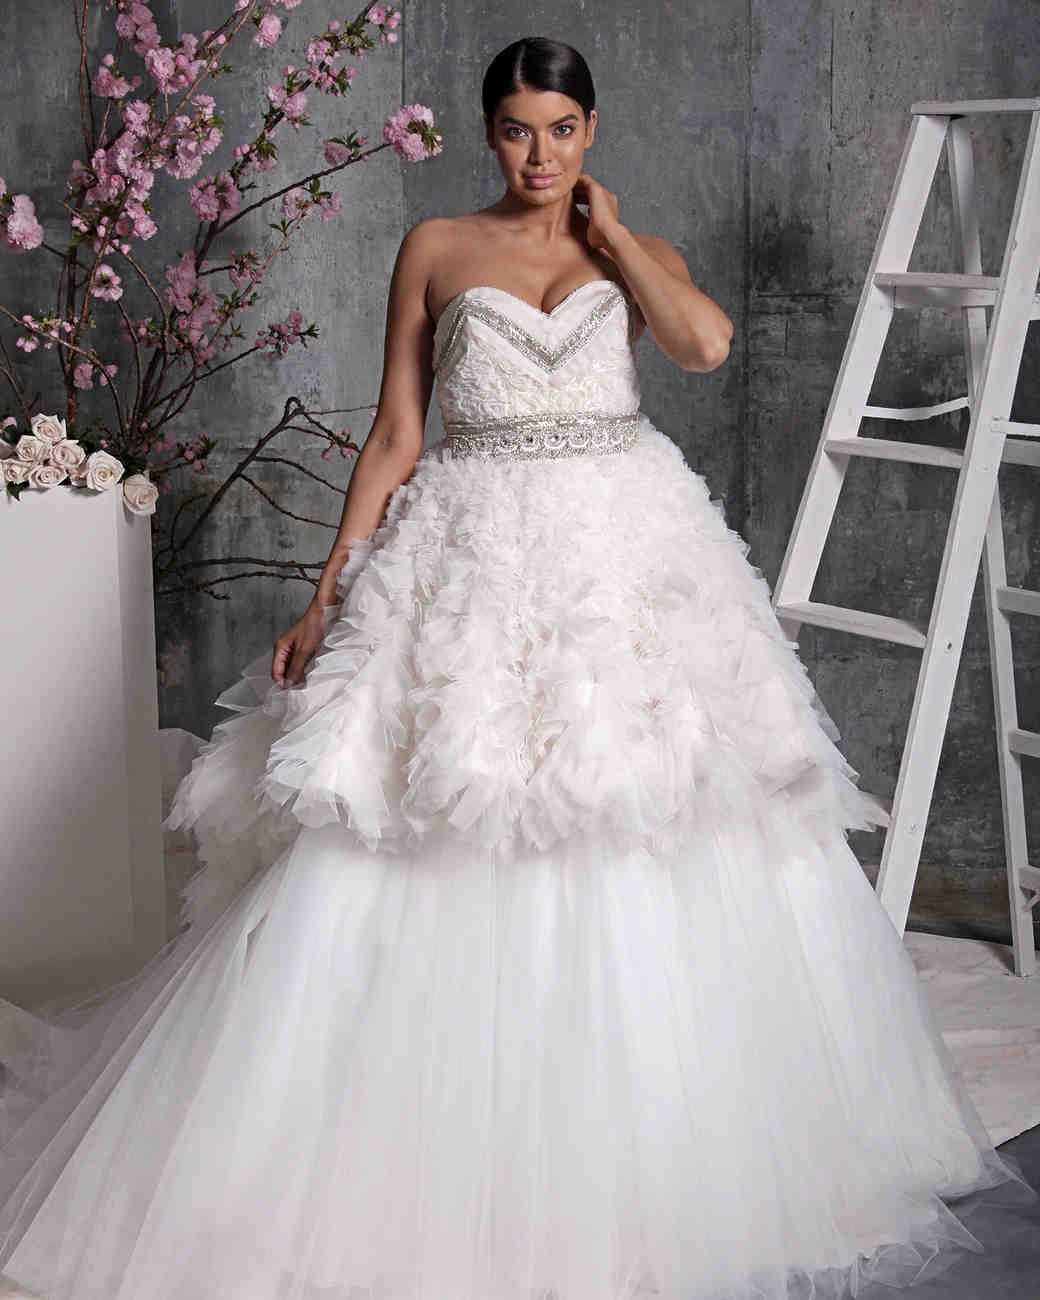 Christian Wedding Gown: 98 Embellished Wedding Dresses